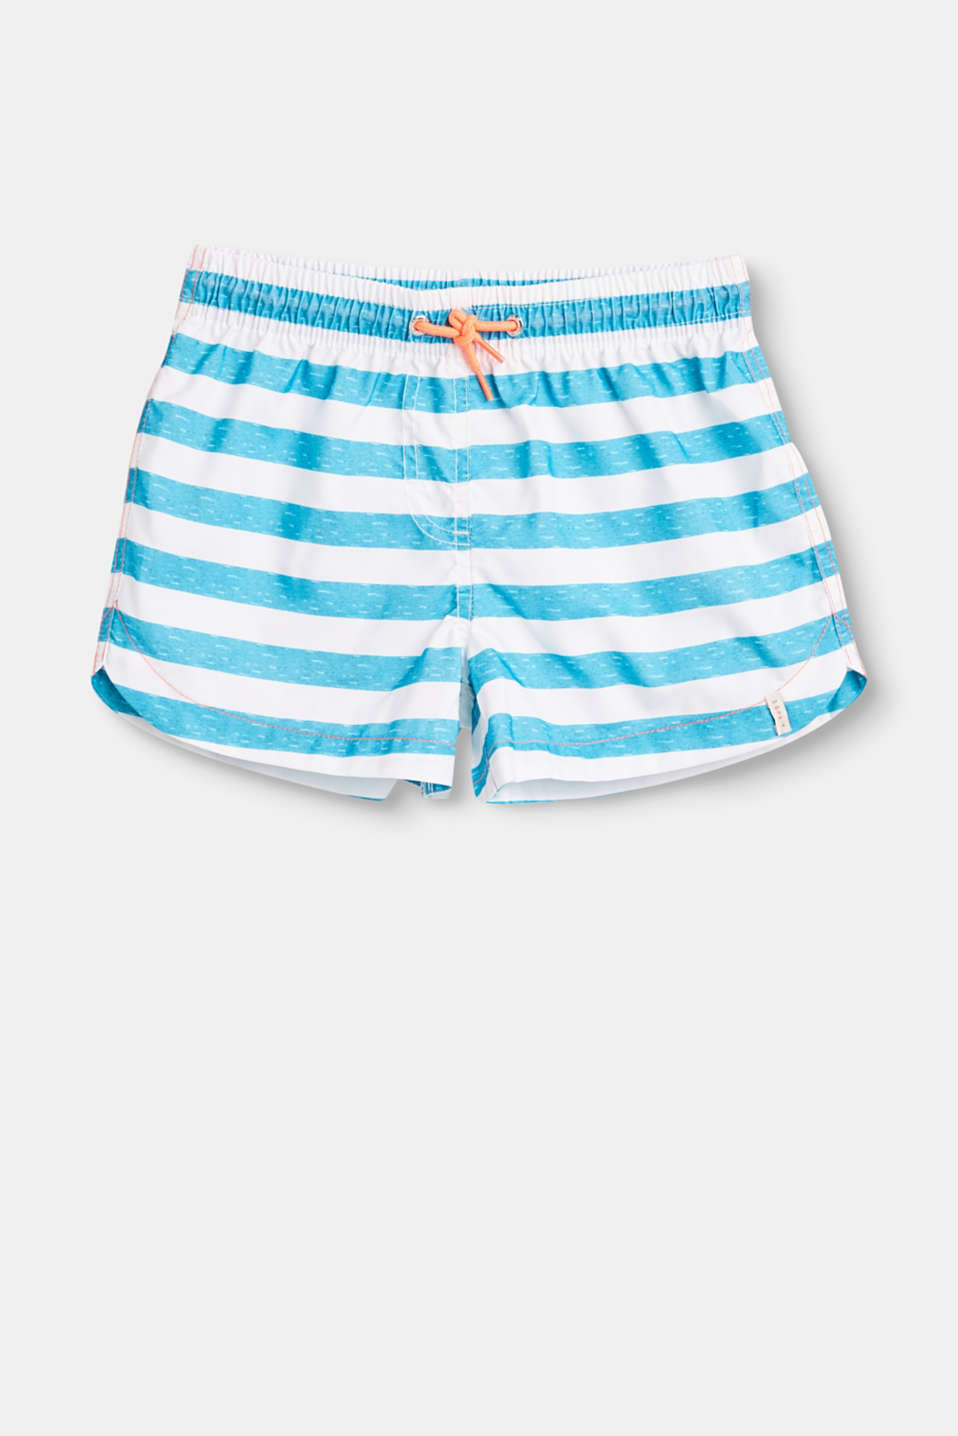 Esprit - Swim shorts with a striped print